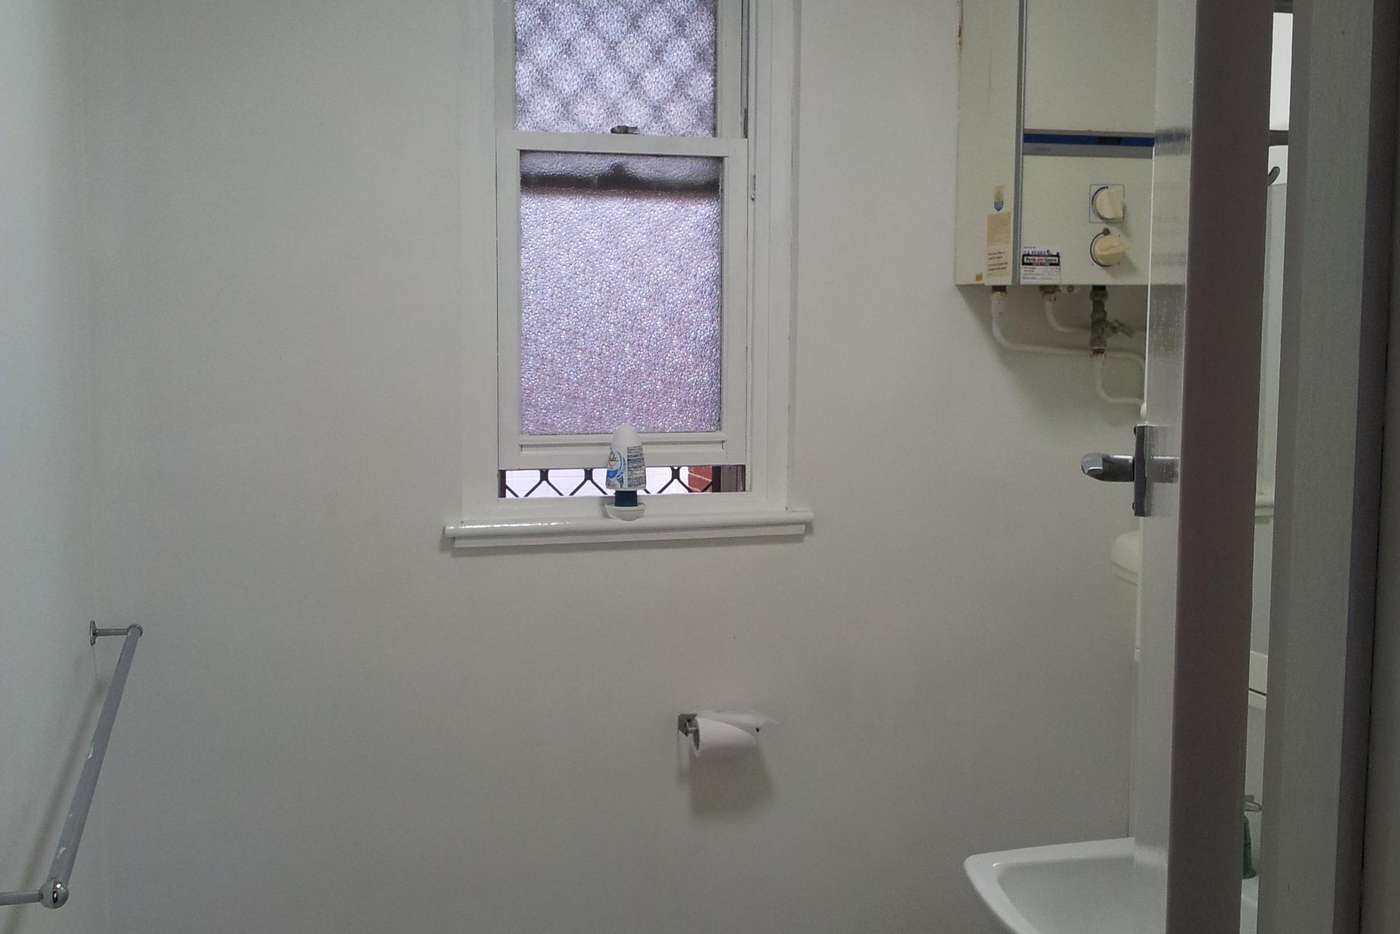 Sixth view of Homely flat listing, 73/66 Cleaver Street, West Perth WA 6005